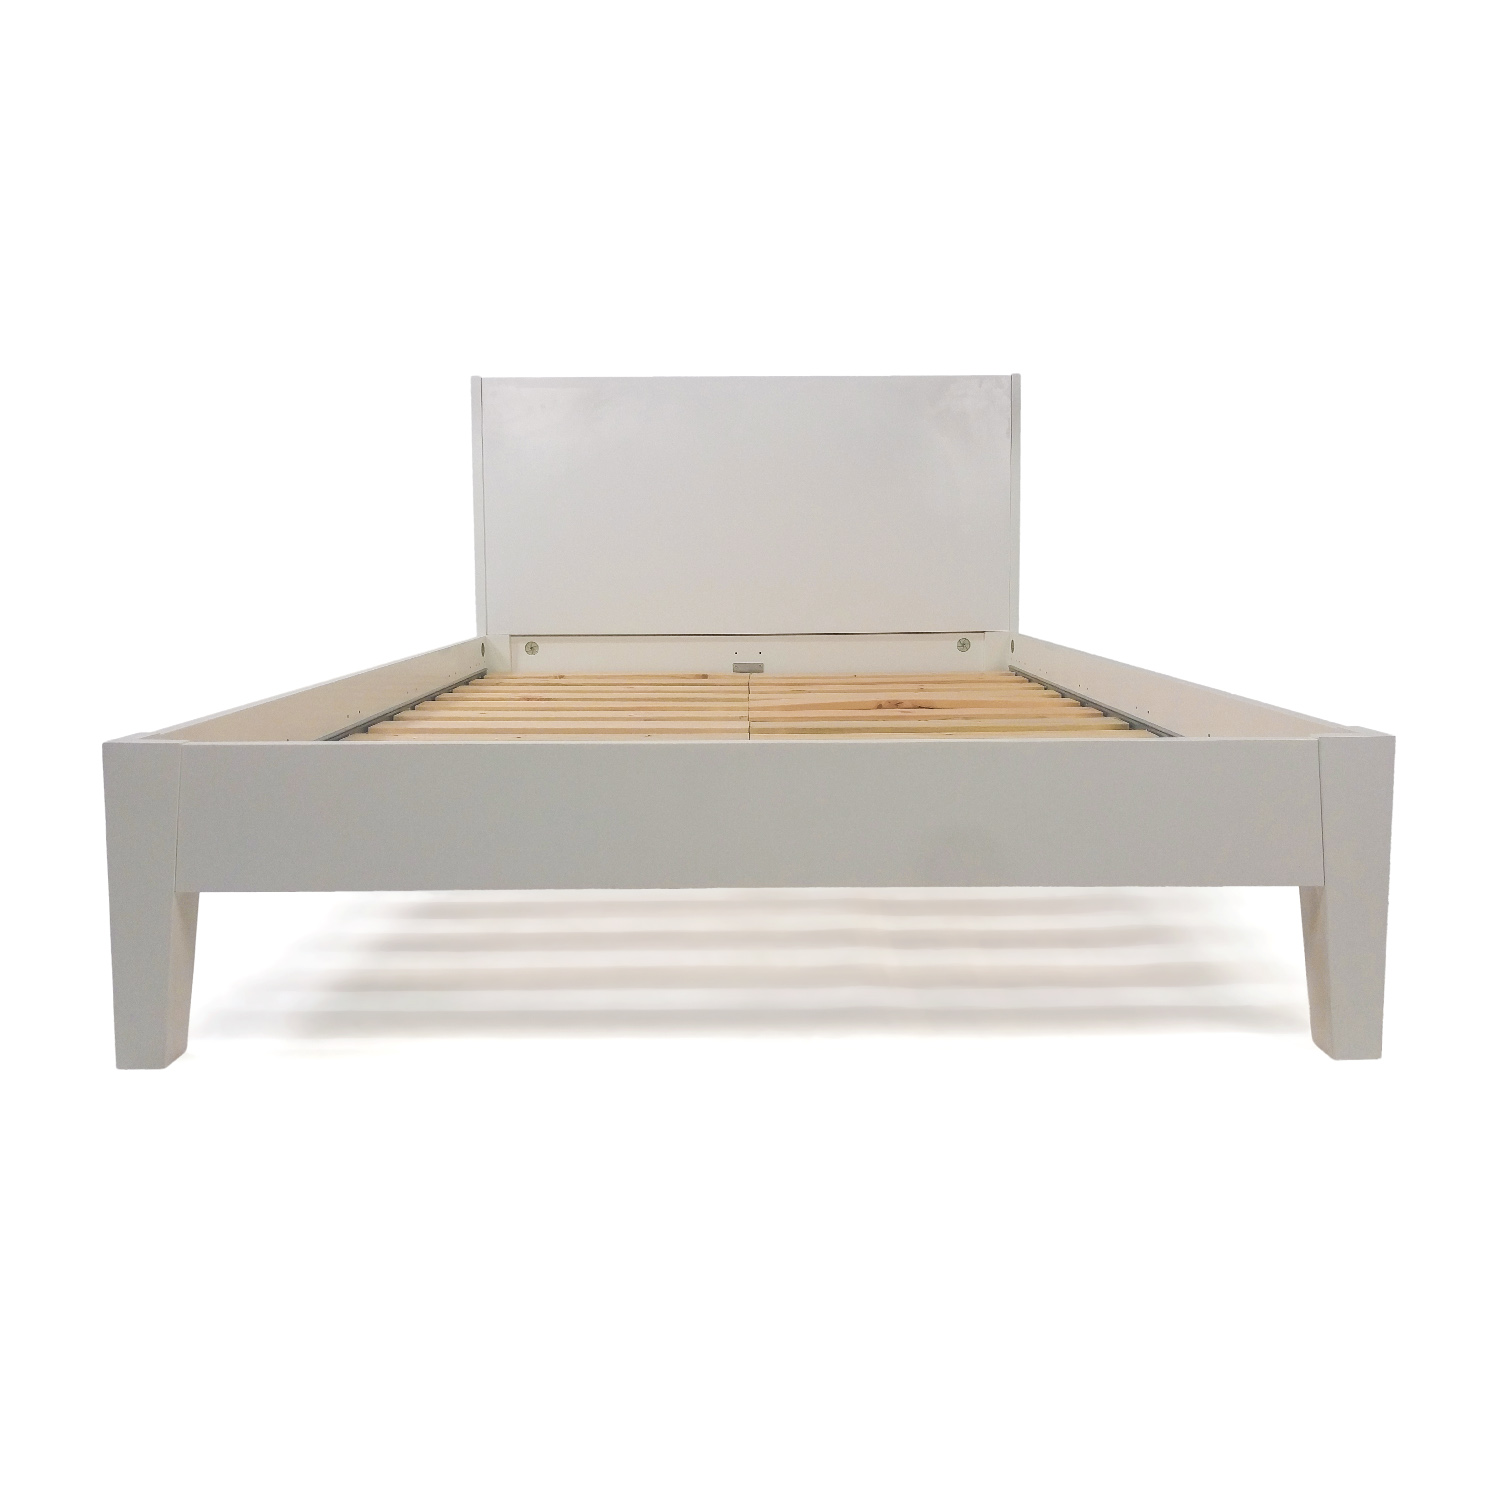 50 Off Ikea Full Malm Bed Frame Beds